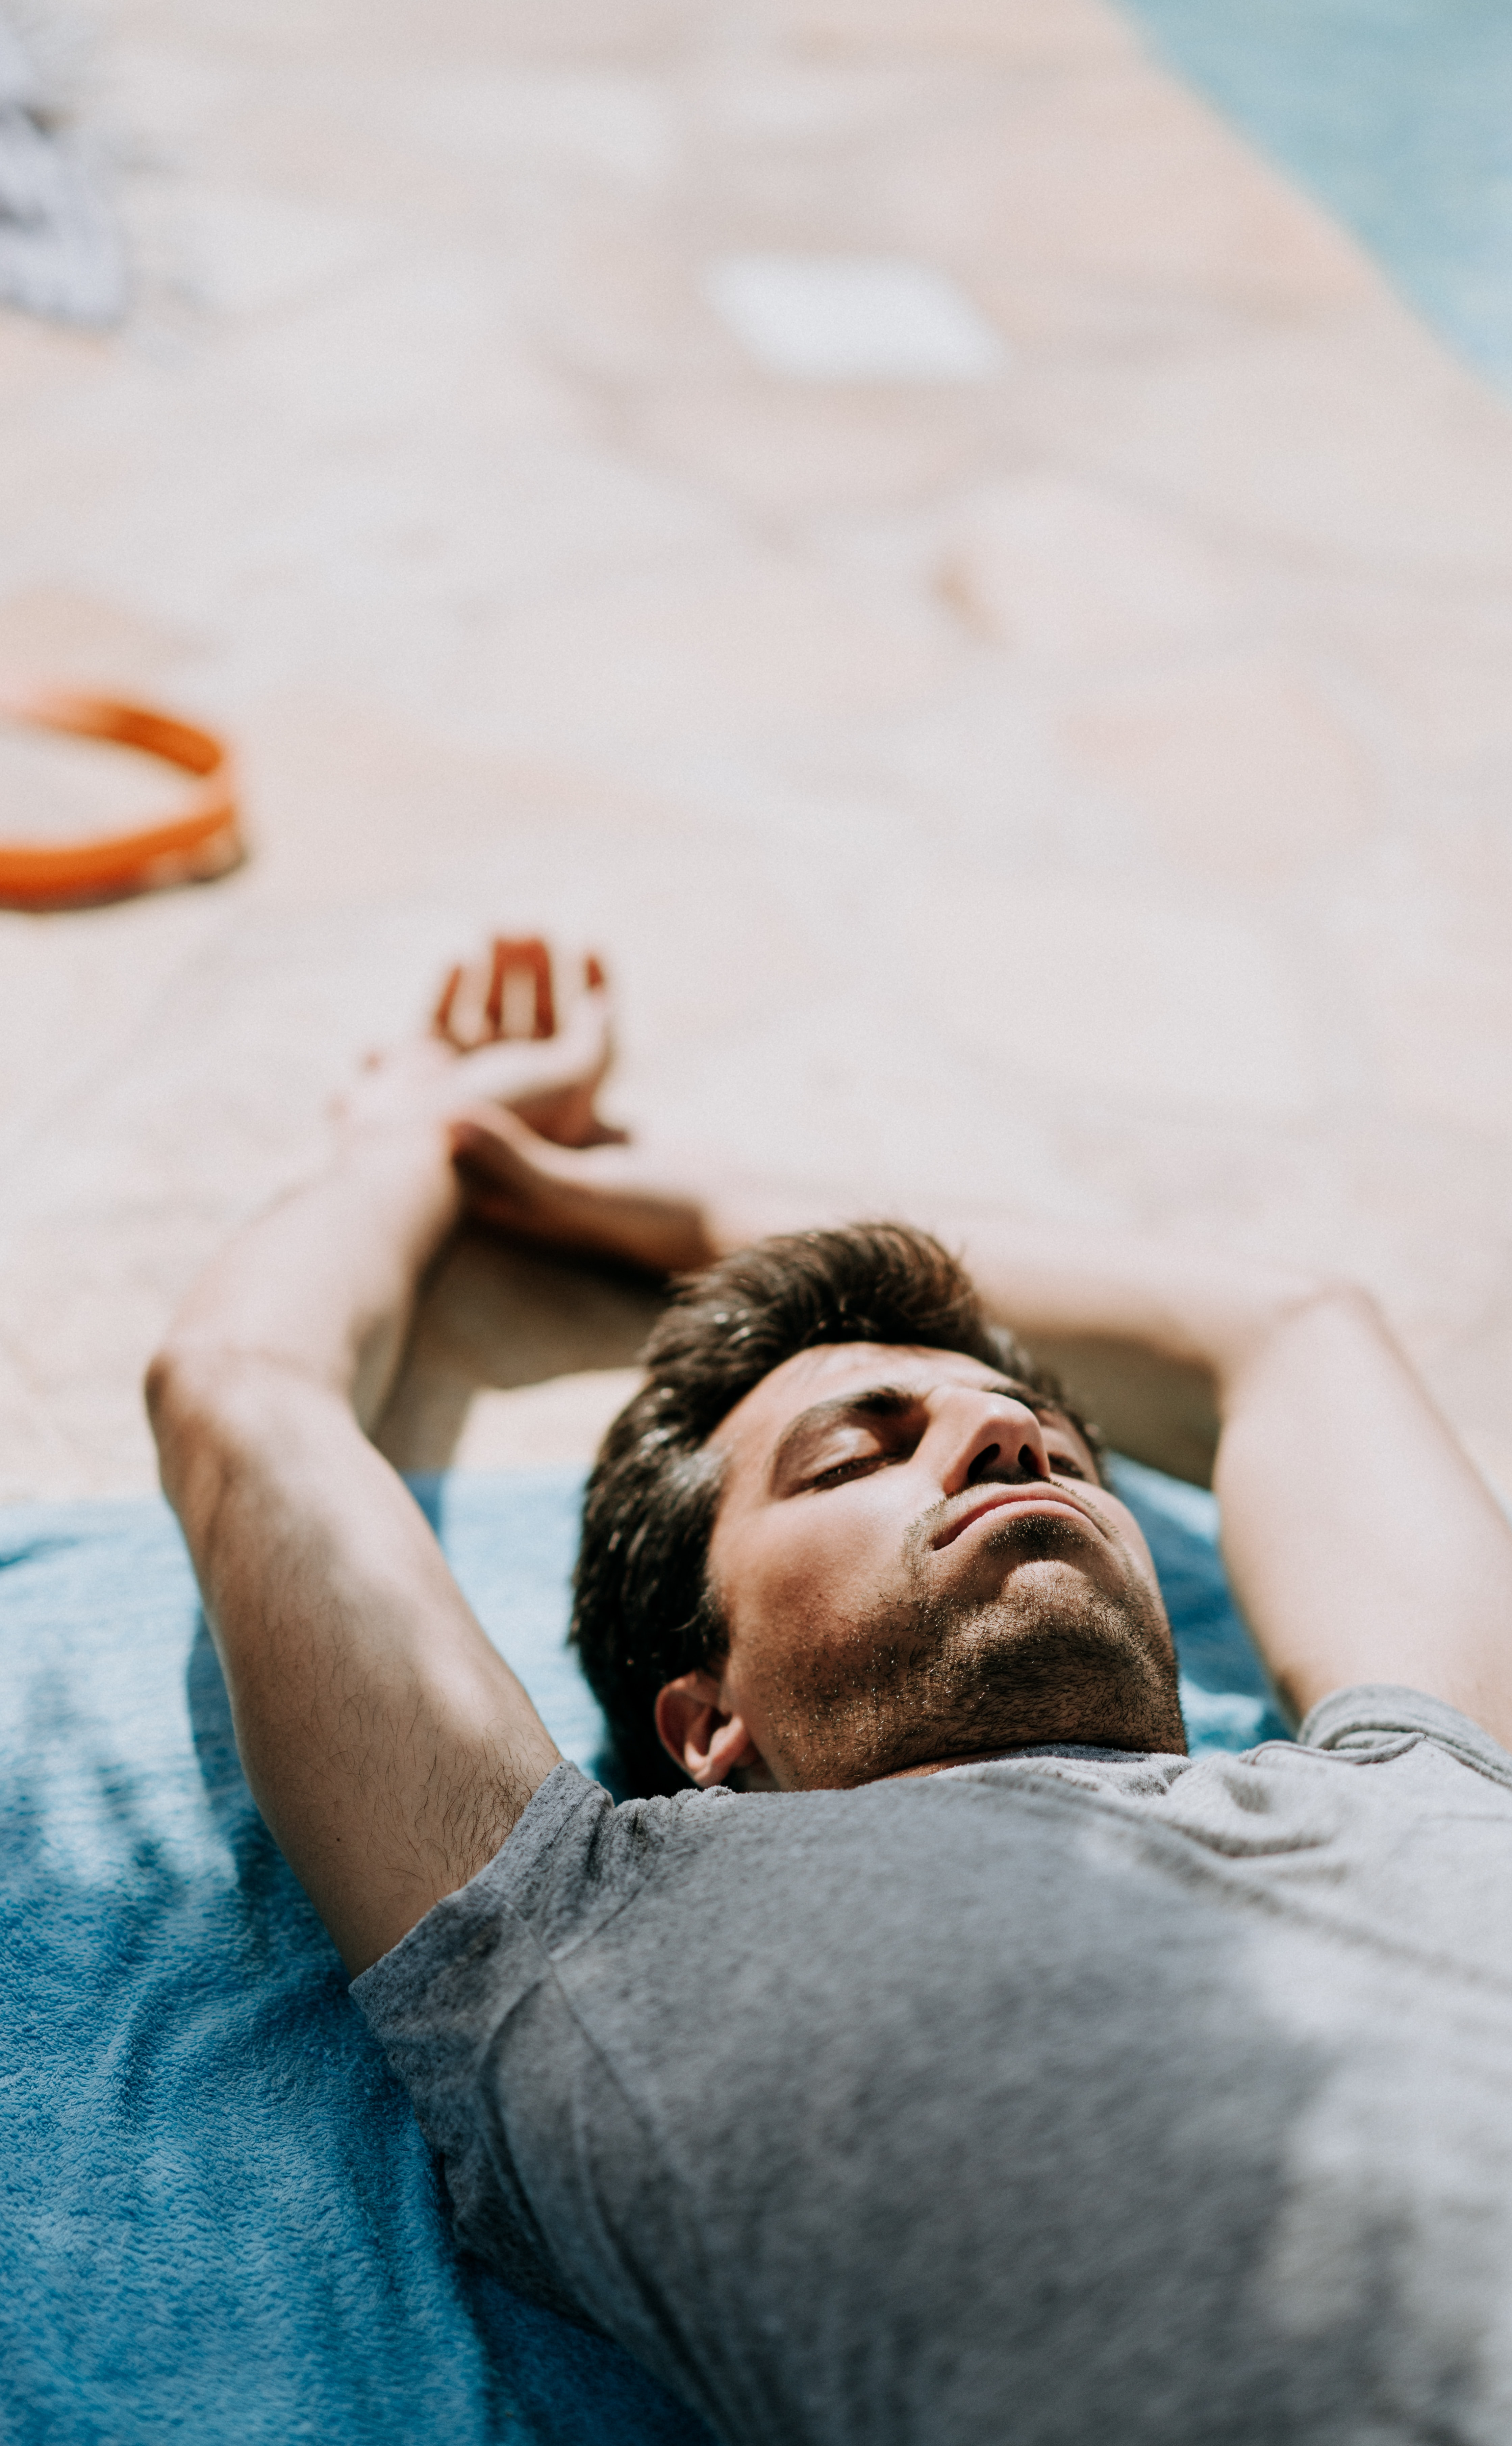 selective focus photography of man lying on blue cushion during daytime